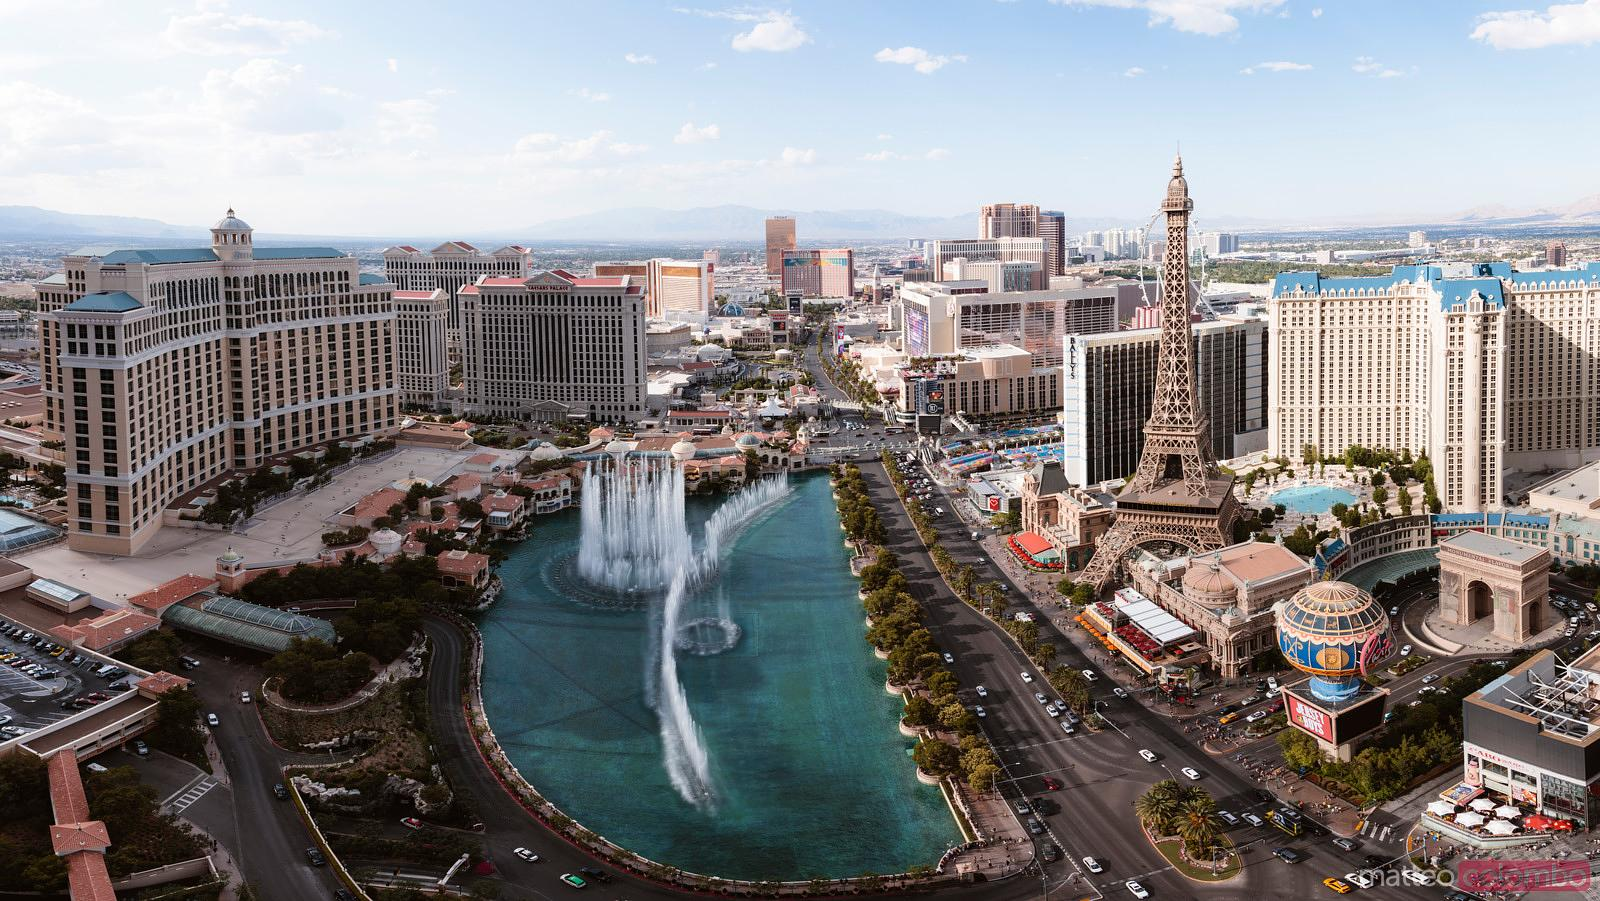 Elevated view of Bellagio fountain, Las Vegas, USA